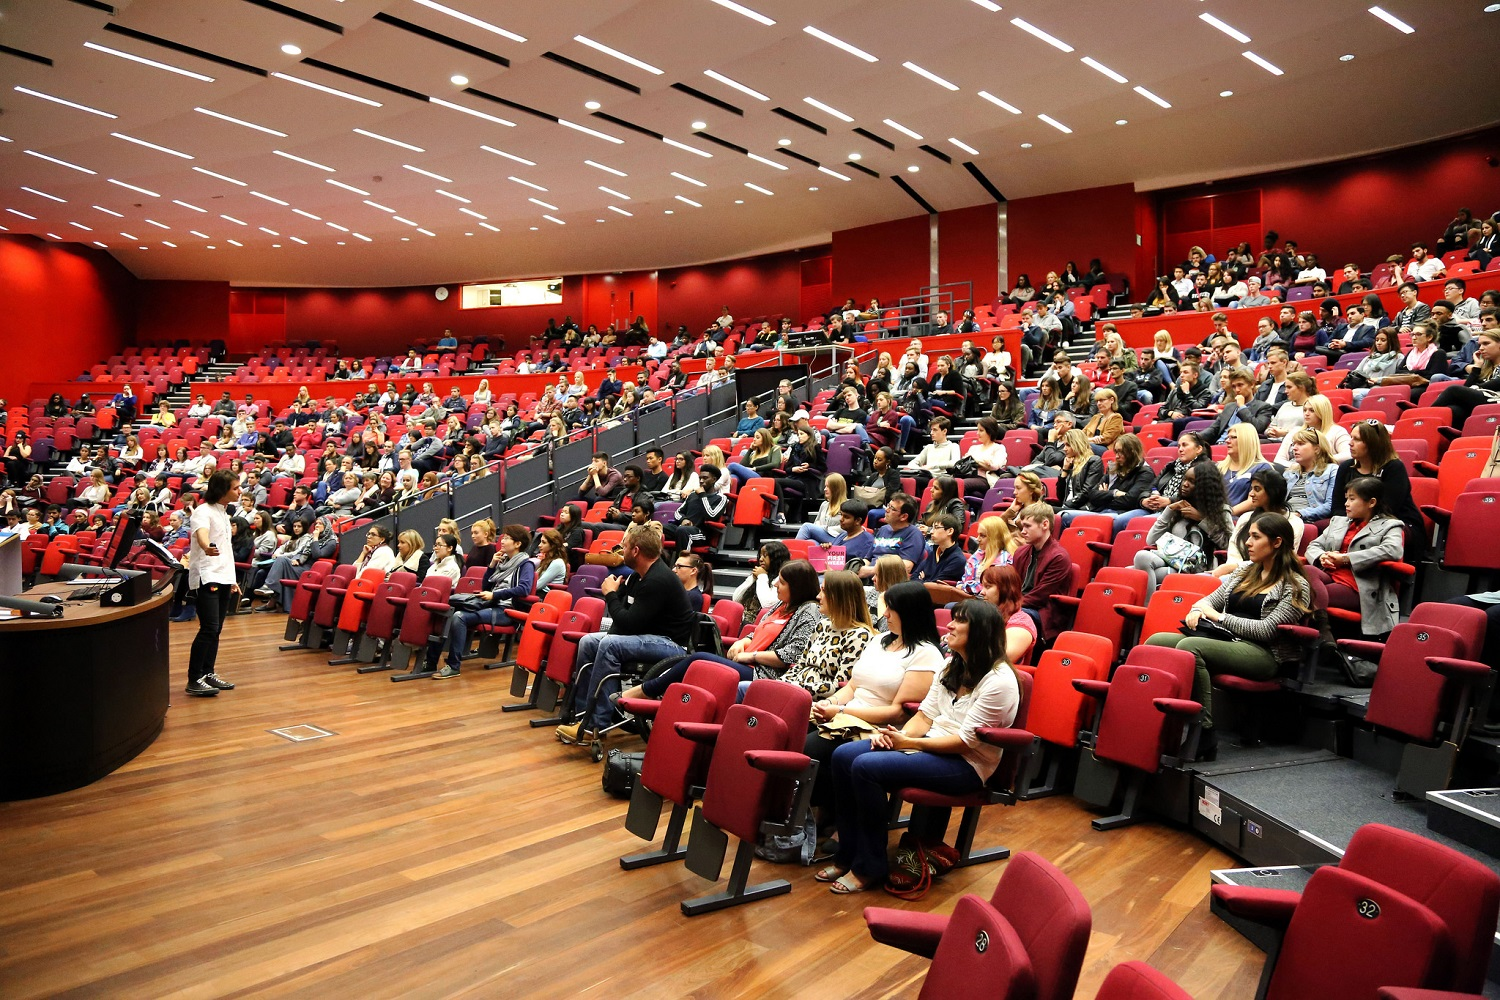 Student audience attending a seminar in the Ivor Crewe Lecture Hall